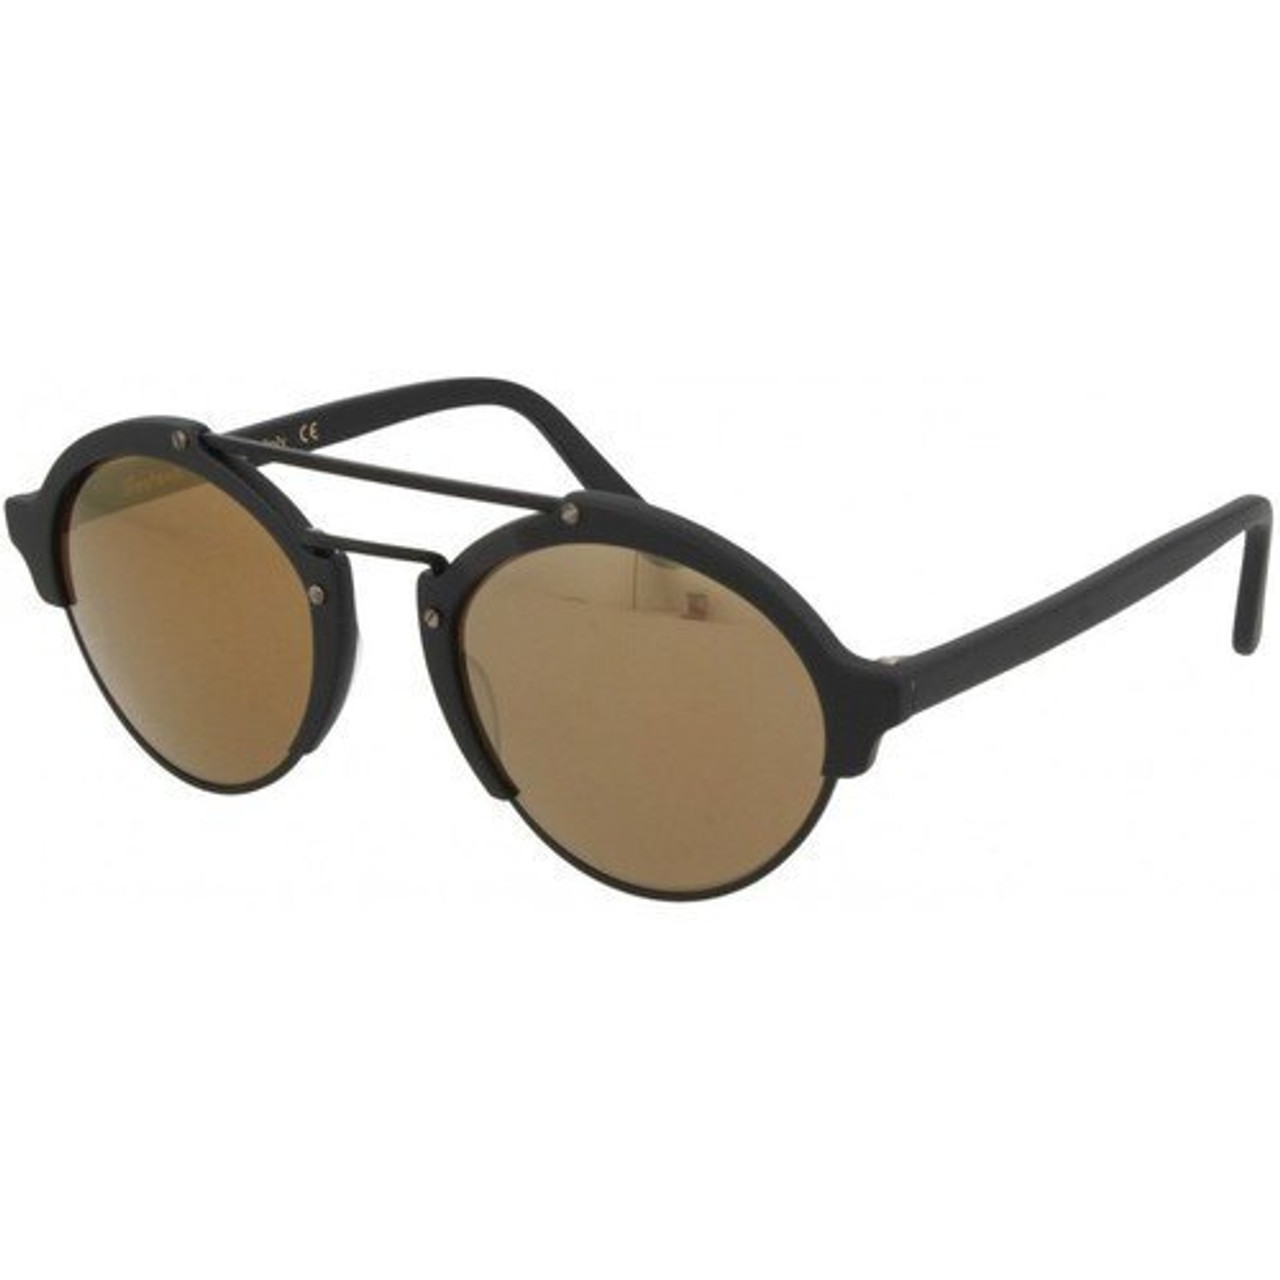 05c710810a5aa Illesteva Milan II Matte Black   Gold Sunglasses - CHROME